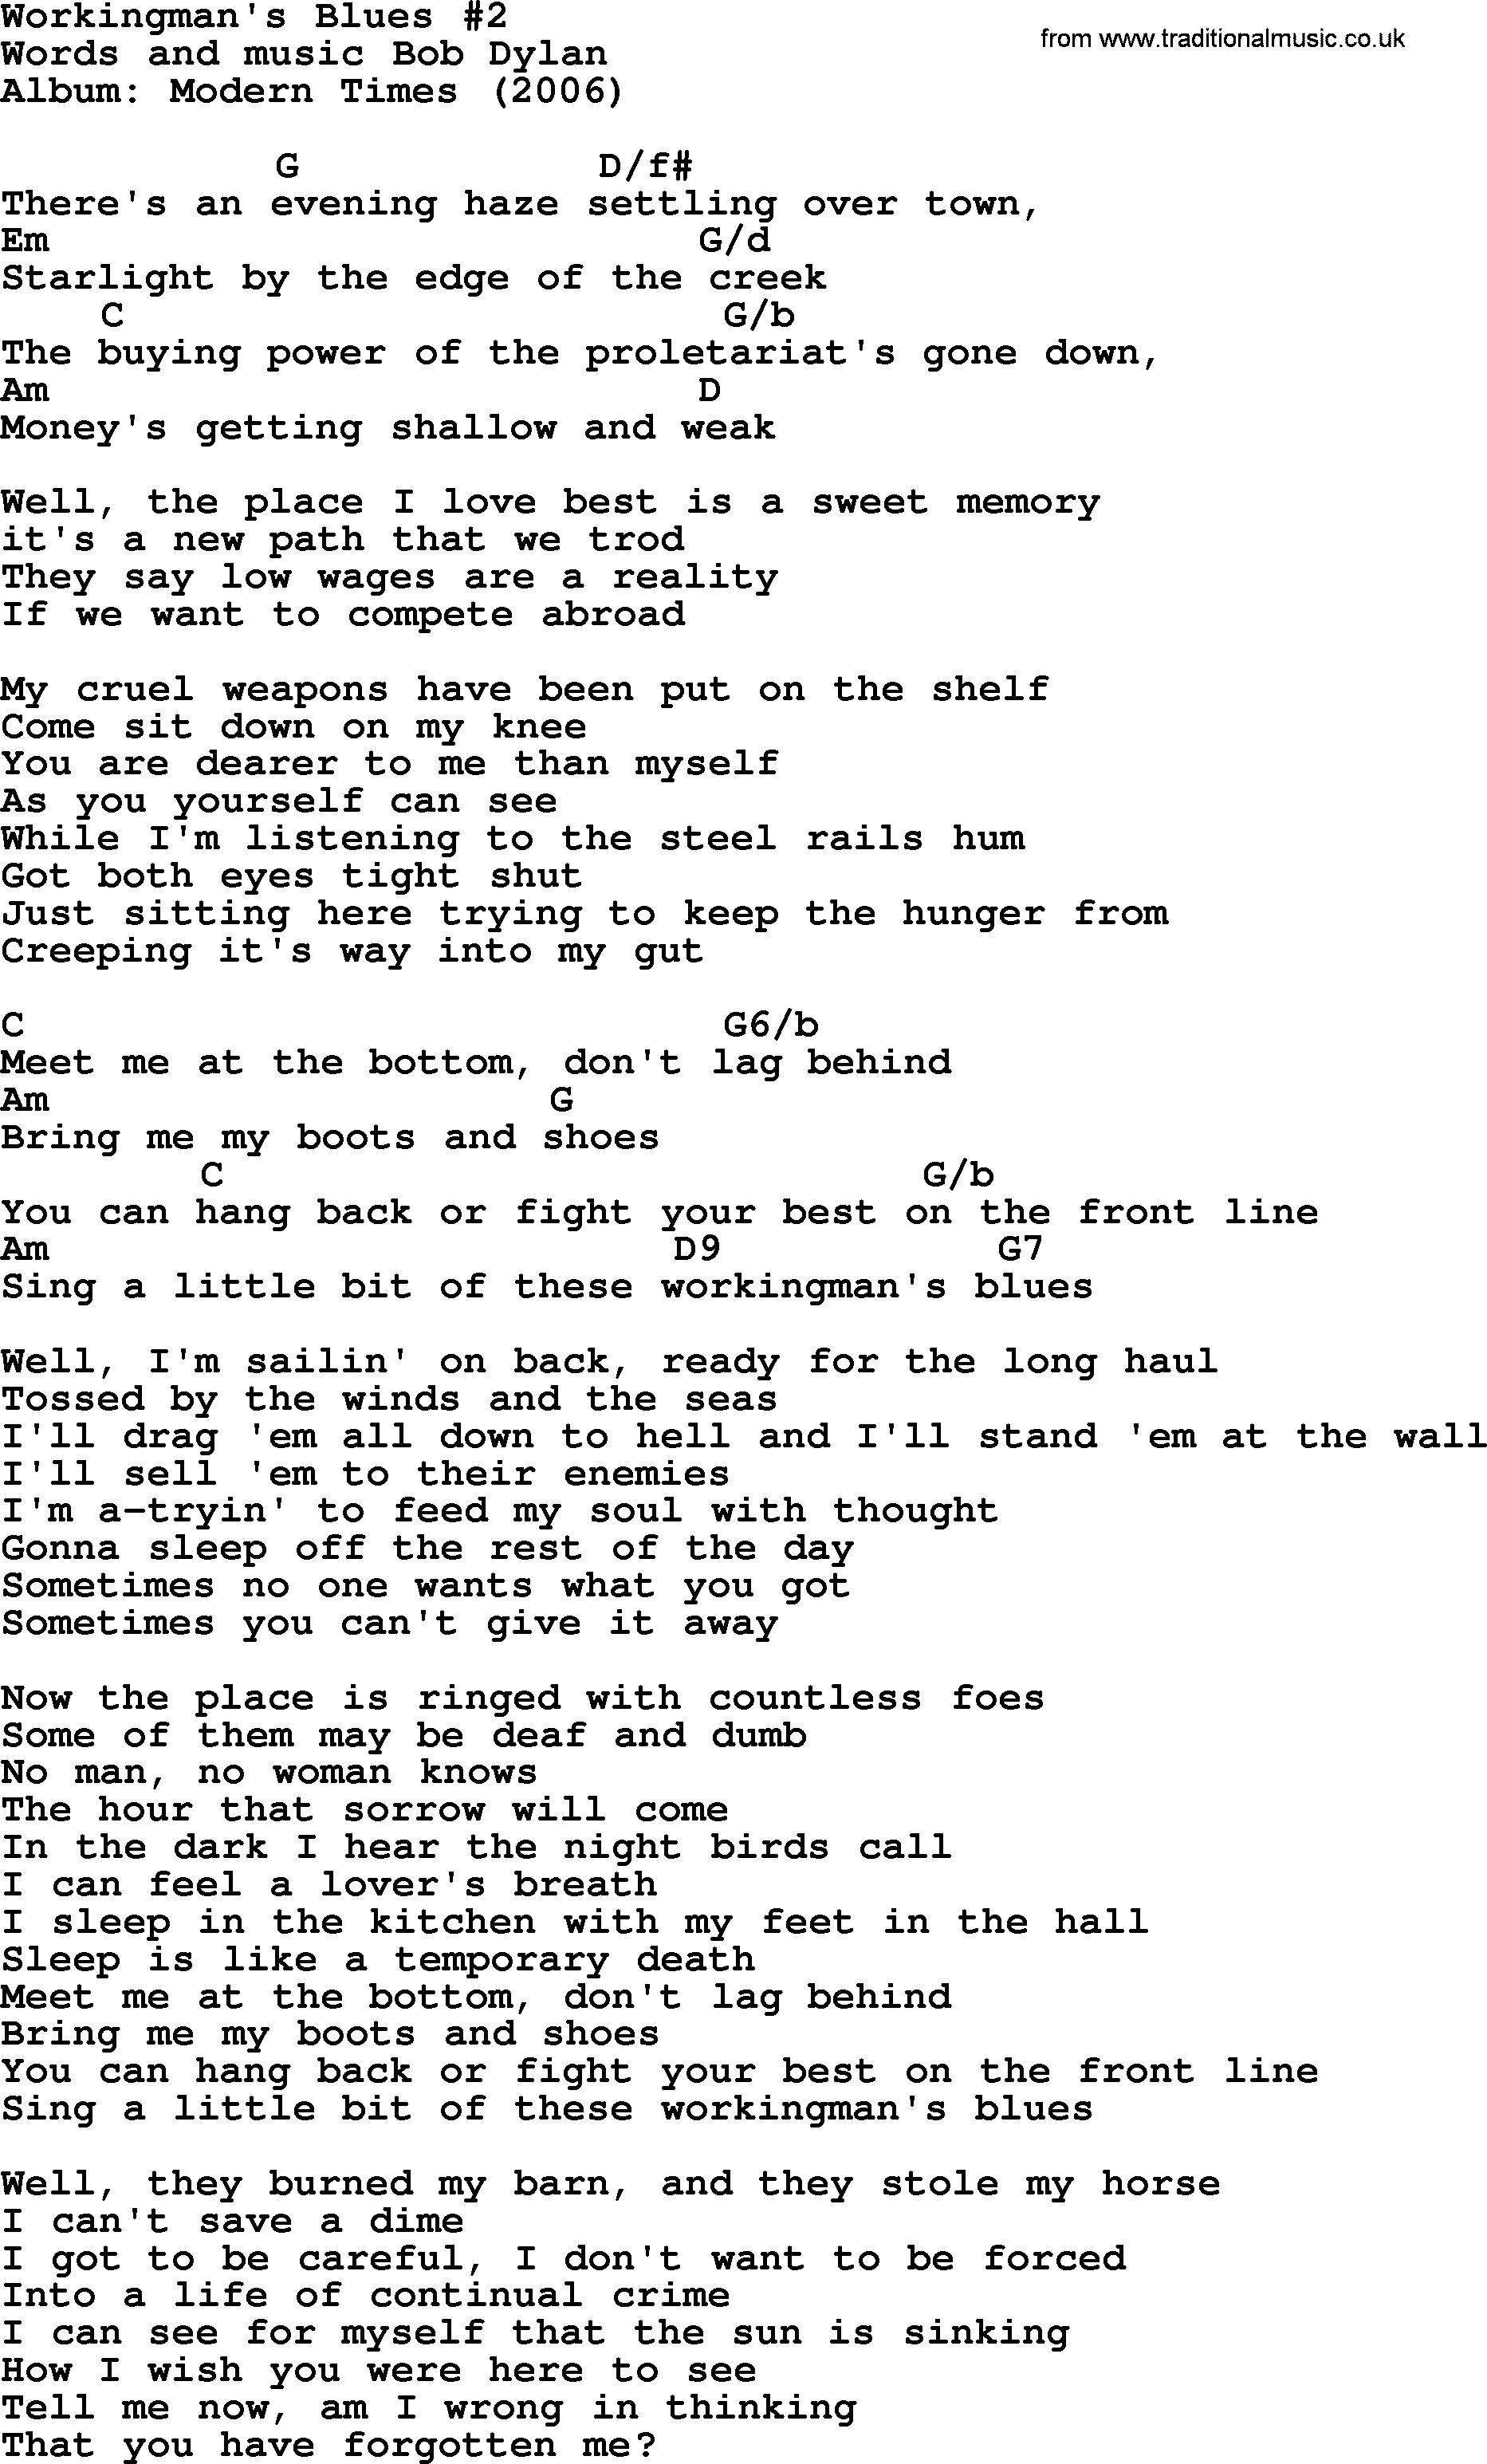 Bob dylan song workingmans blues 2 lyrics and chords bob dylan song lyrics with chords workingmans blues 2 hexwebz Image collections